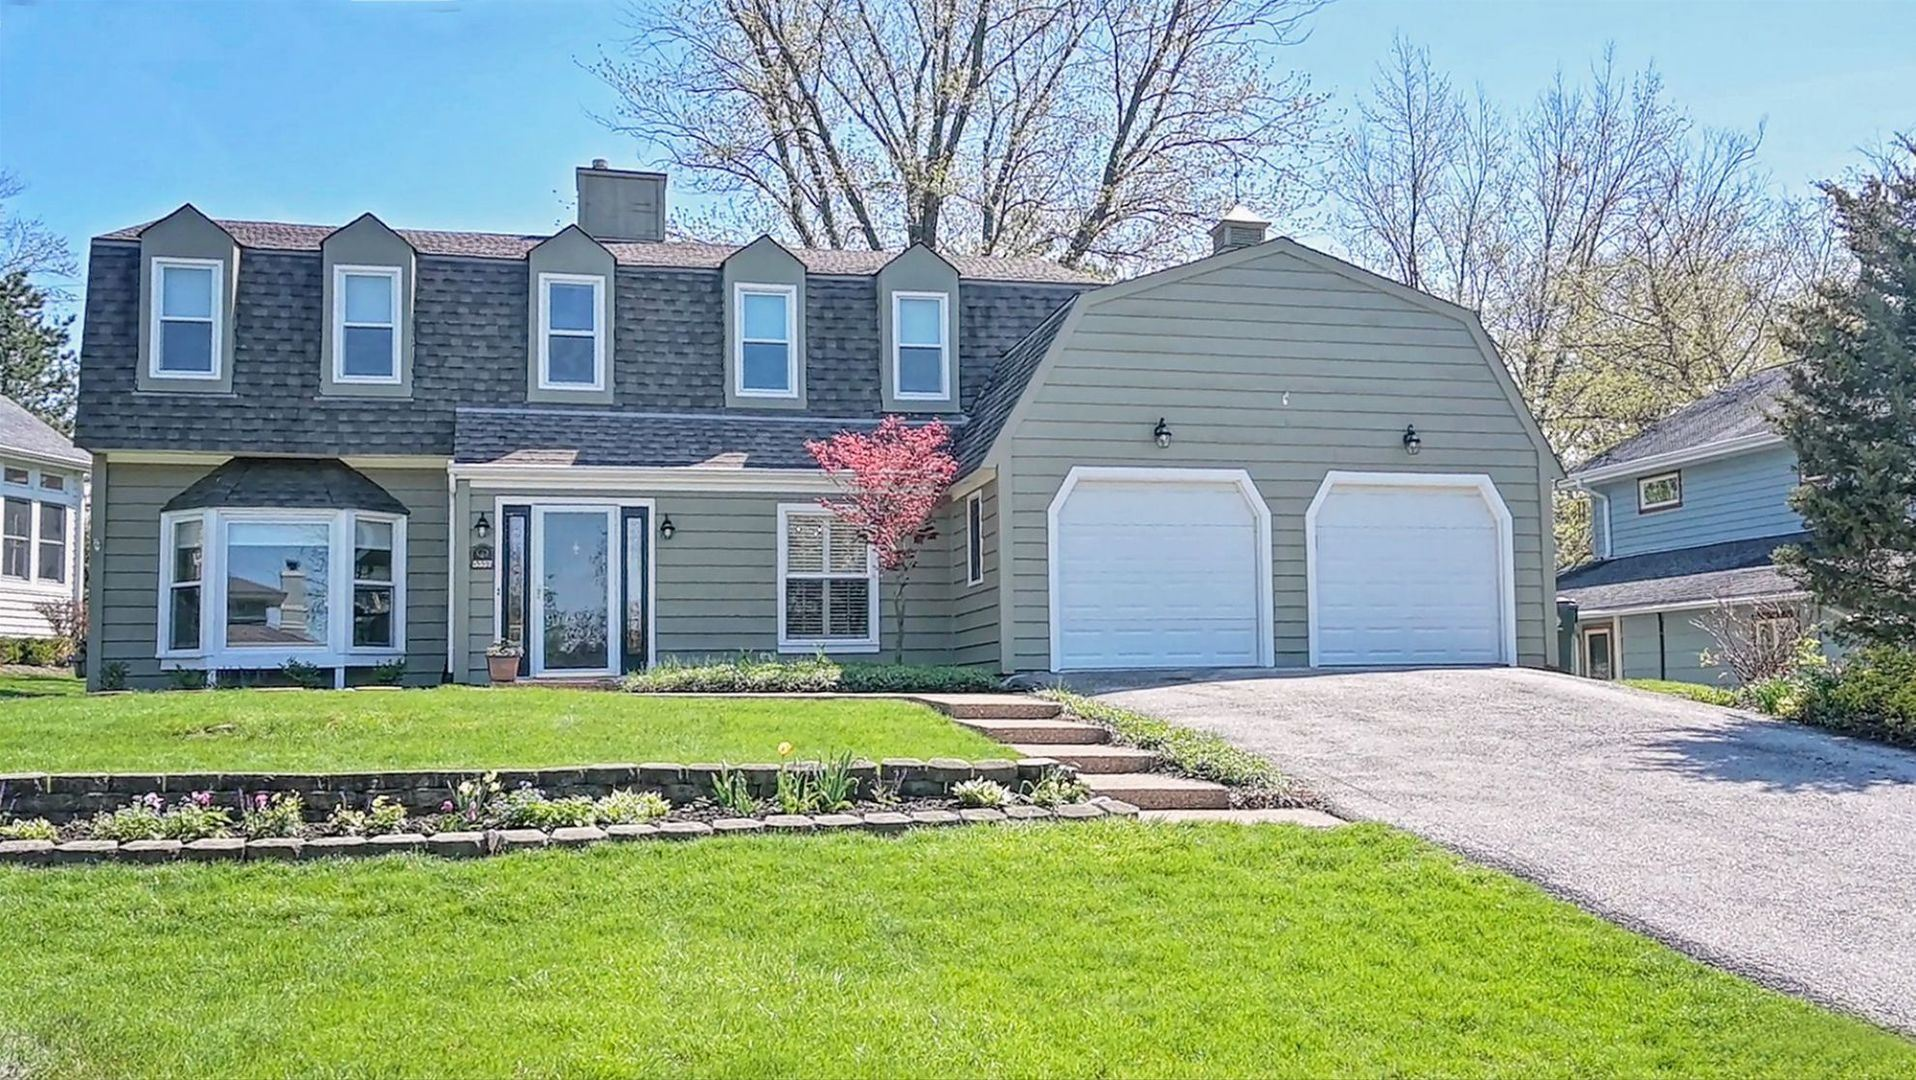 5557 S Quincy Street, Hinsdale, IL 60521 - #: 10665484